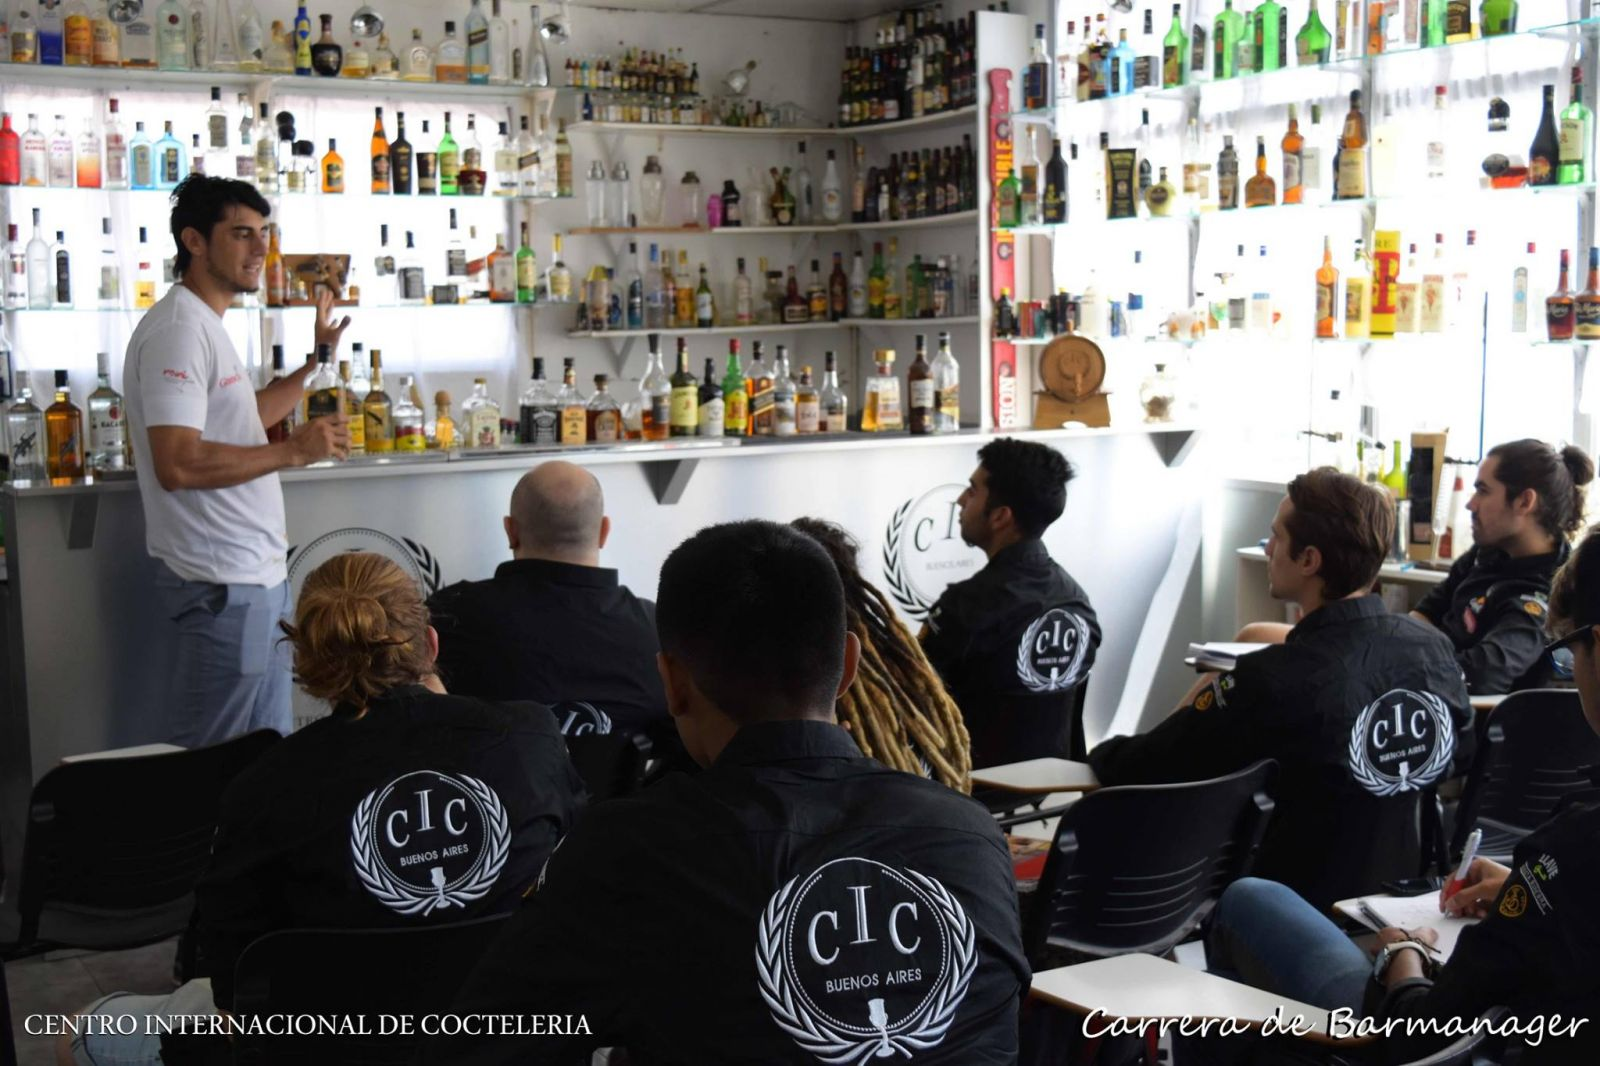 curso de barmanager y carrera de barmanager